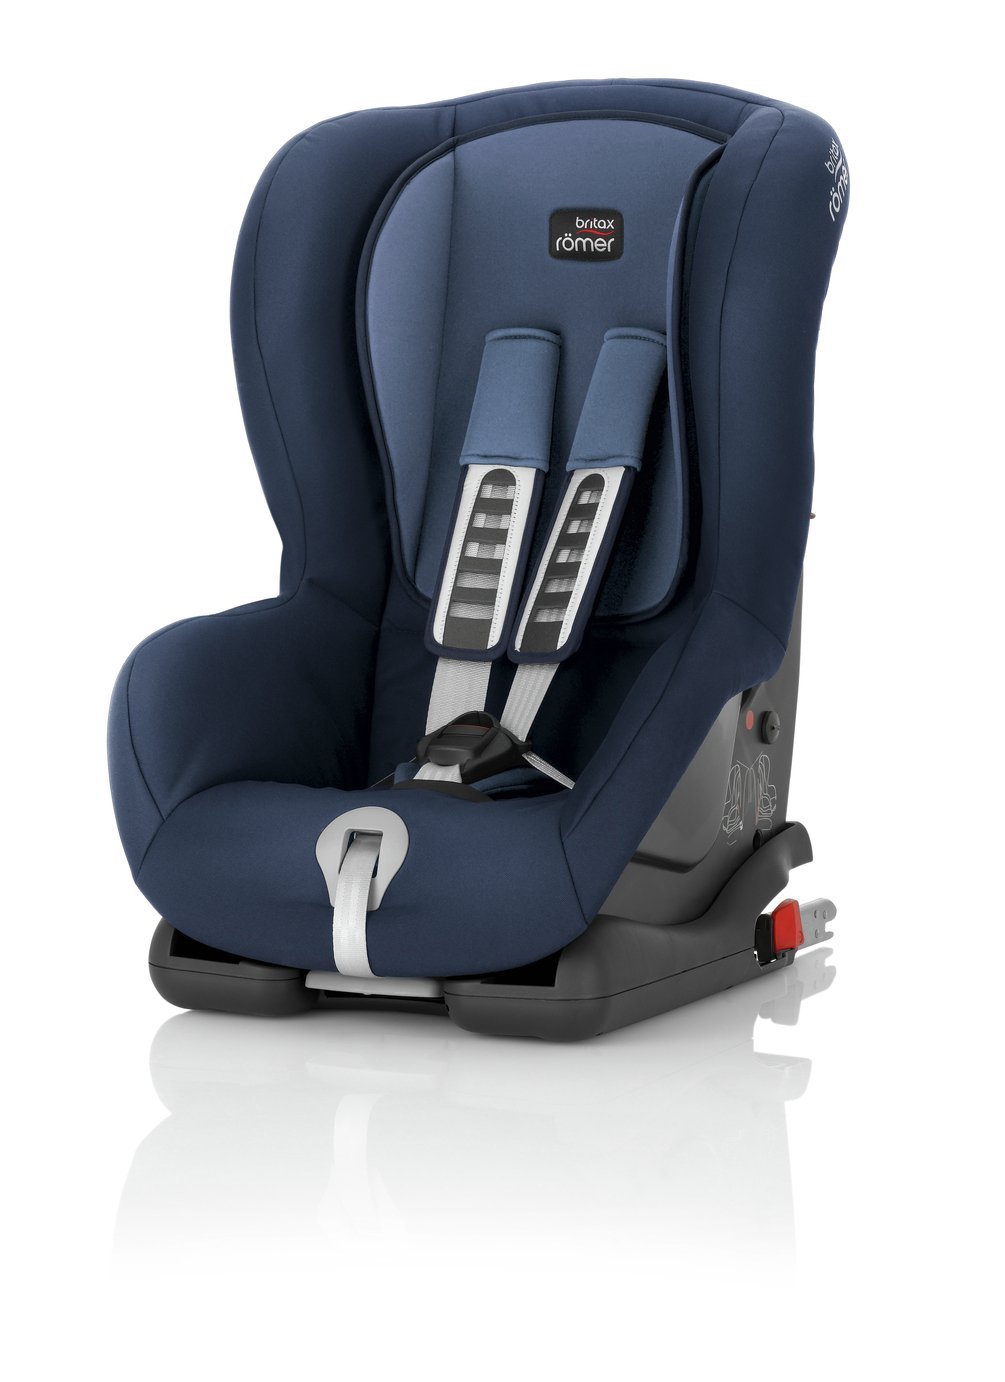 Image of Britax Romer DUO PLUS Group 1 Car Seat - Ocean Blue